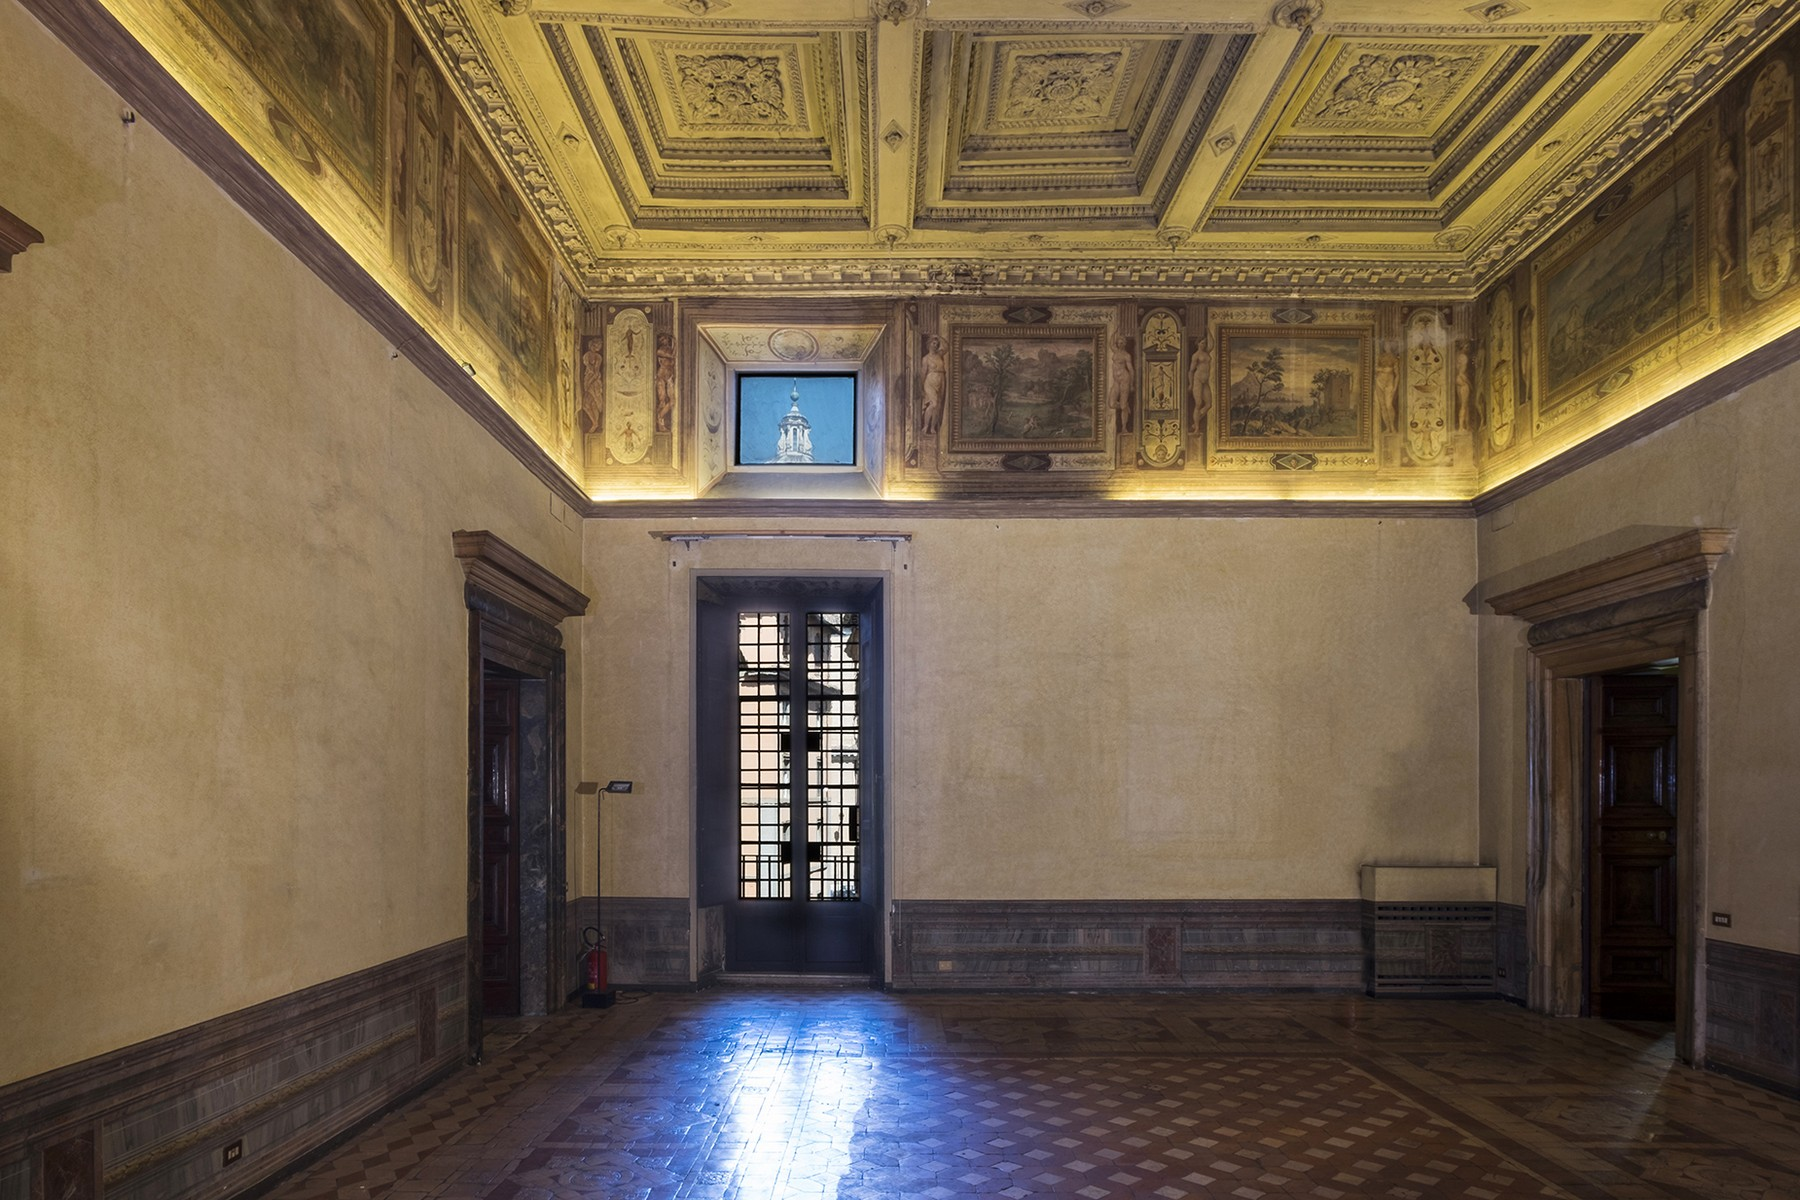 Additional photo for property listing at Palazzo Sacchetti, a pearl of the late Reinassance in the heart of Rome Via Giulia Rome, Rome 00186 Italy